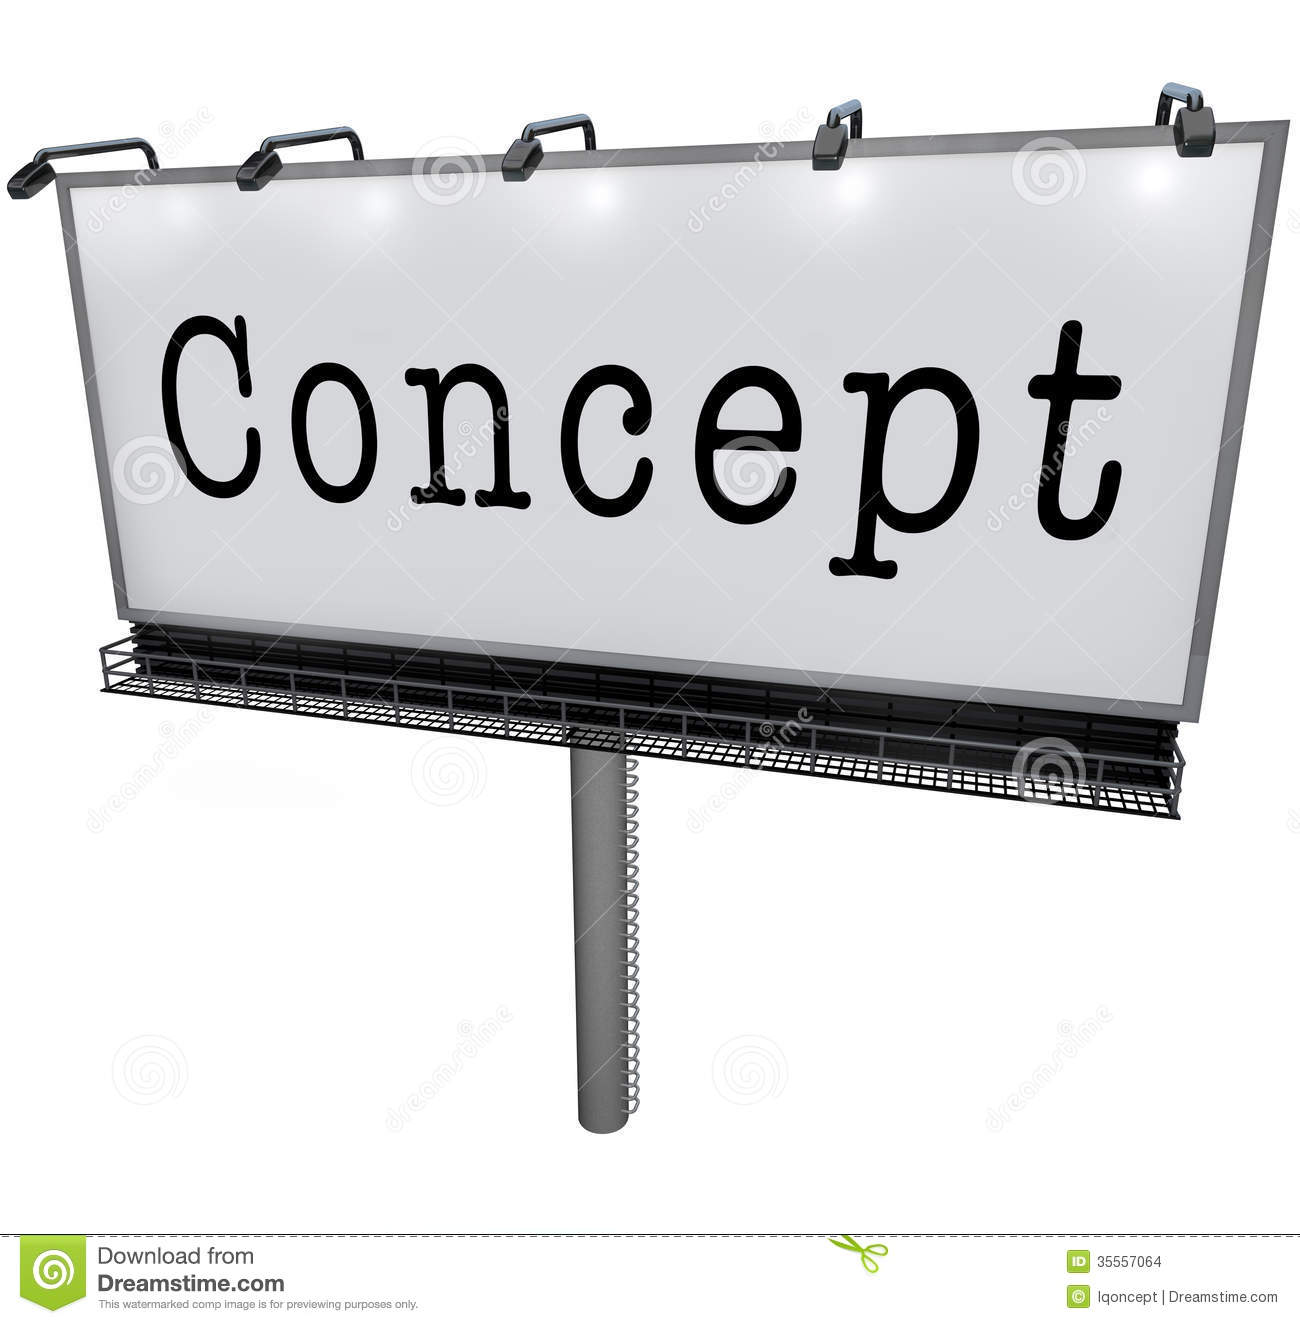 Concept word on a billboard or sign advertising a new idea, innovation ...